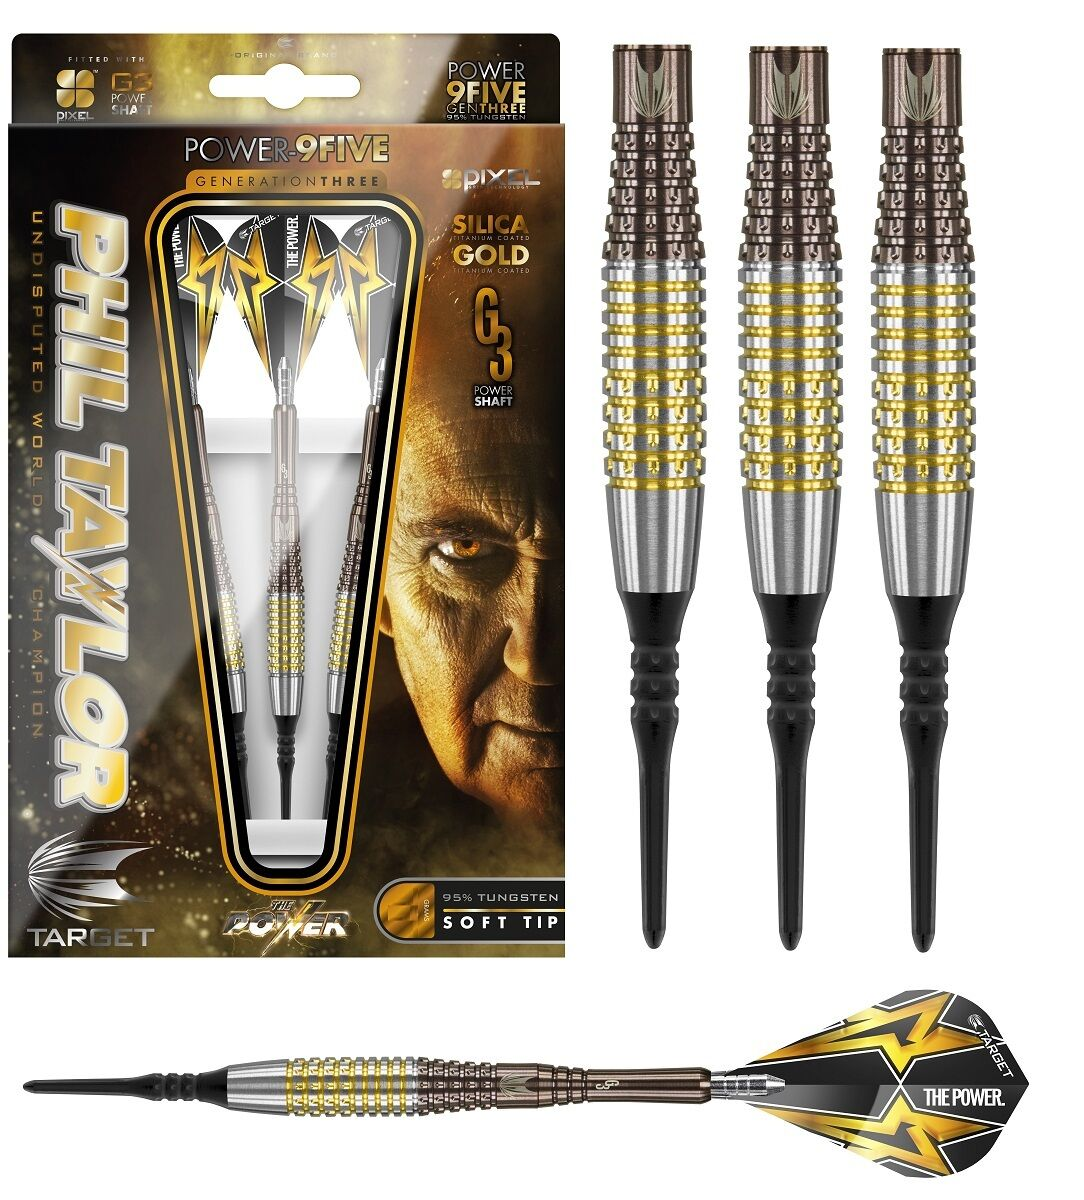 Phil Taylor Power Generation 3 9Five 95% Tungsten Soft Tip Darts by Target - G3